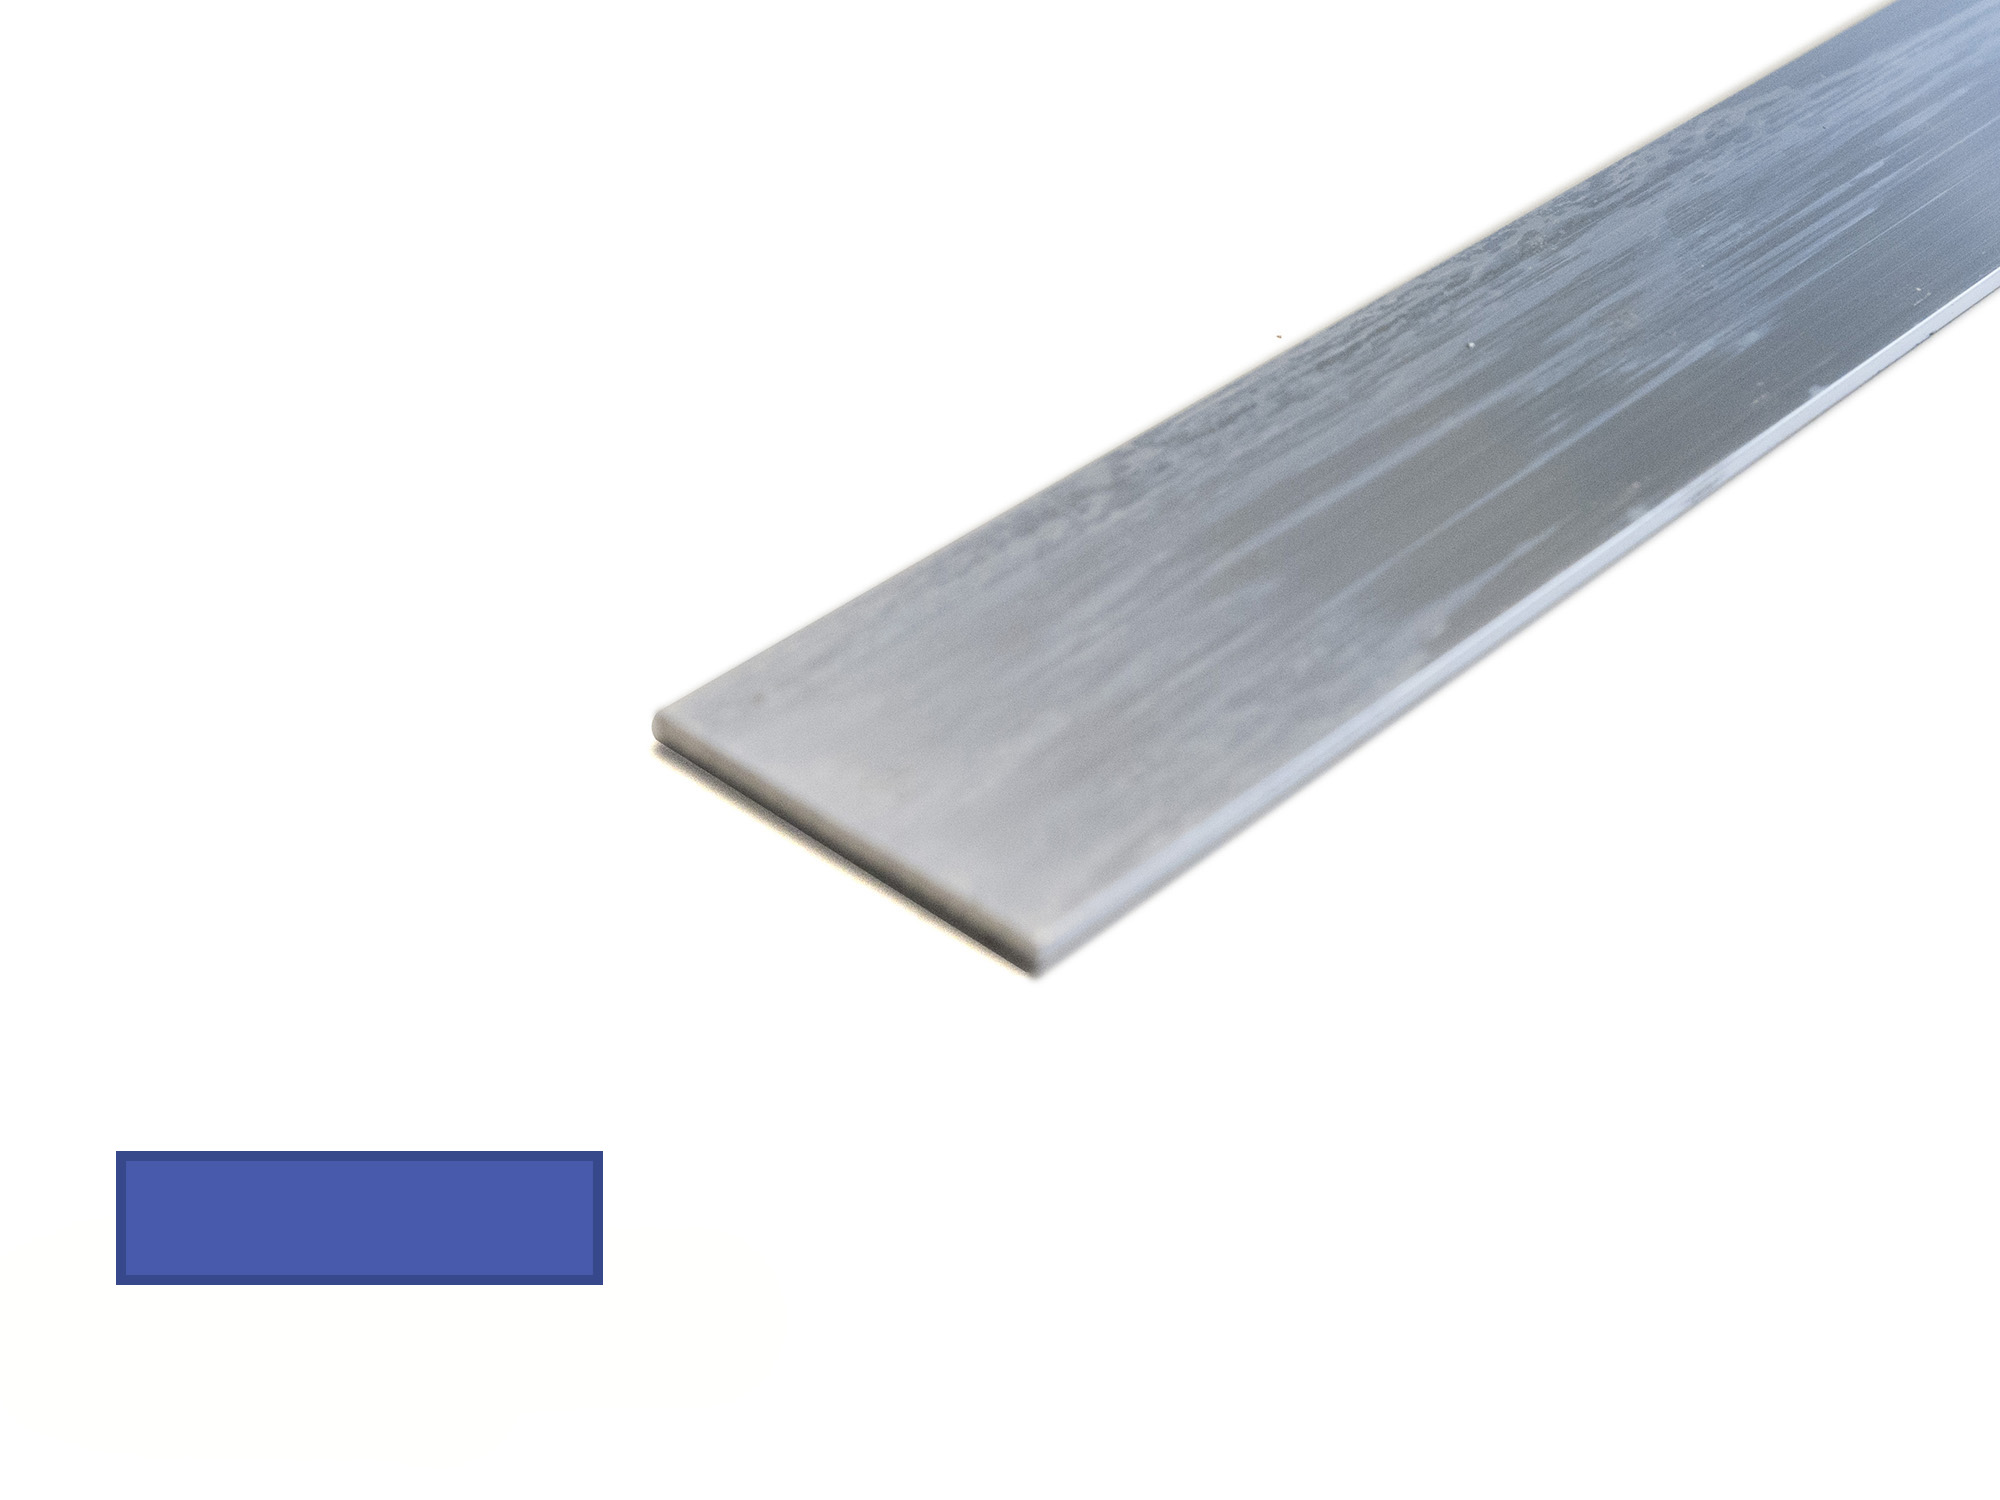 aluminium strip 20 x 4mm